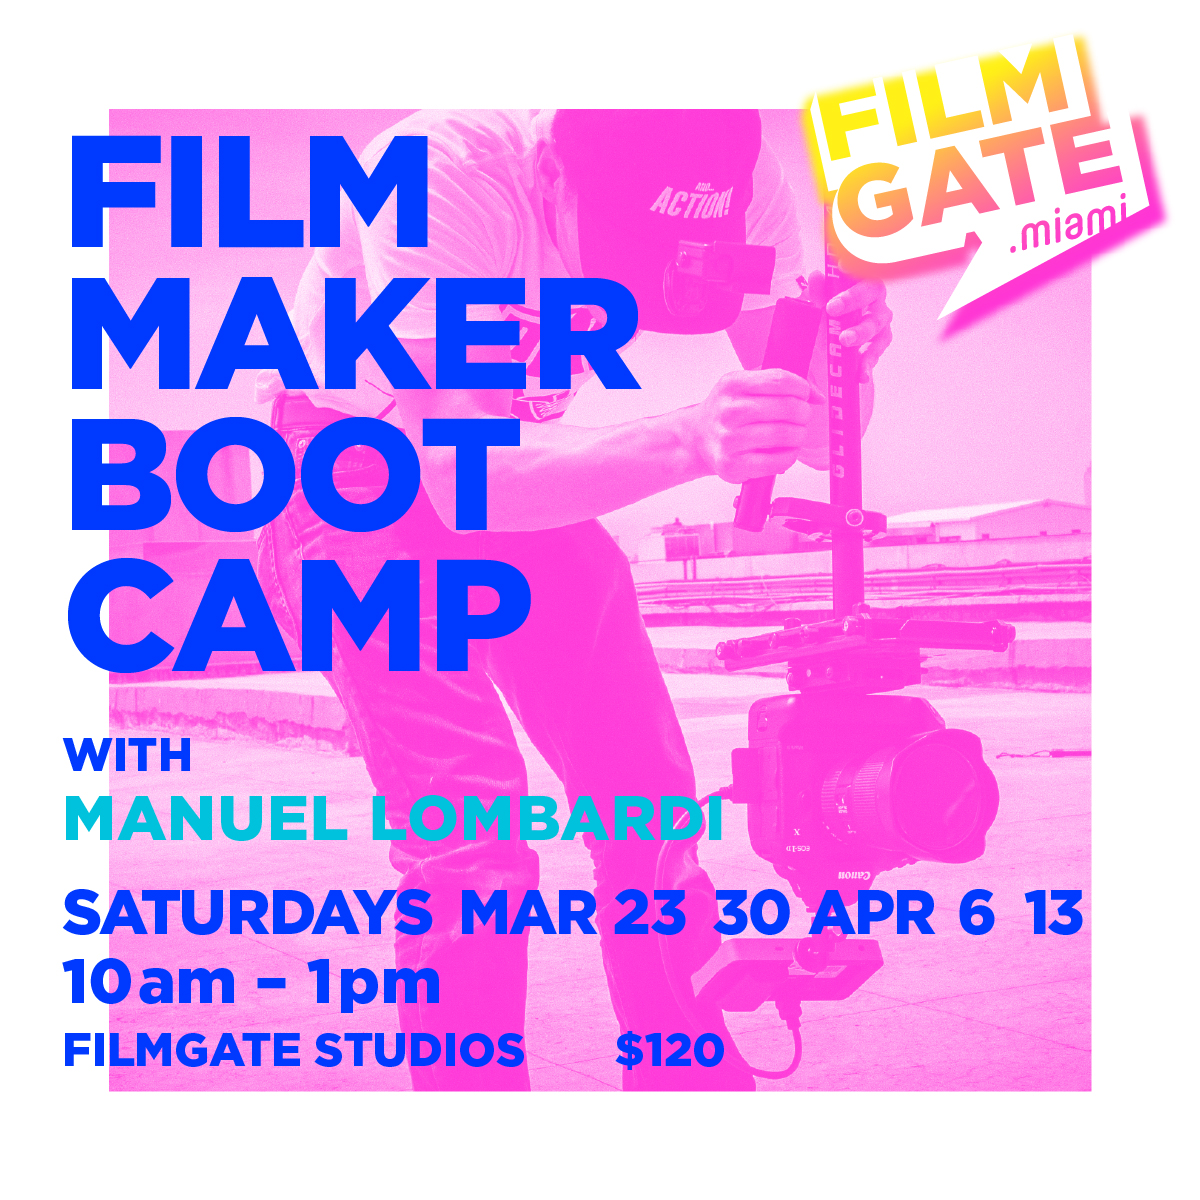 FG_FILMMAKER-BOOTCAMP_MARCH-APRIL-2019_insta.jpg